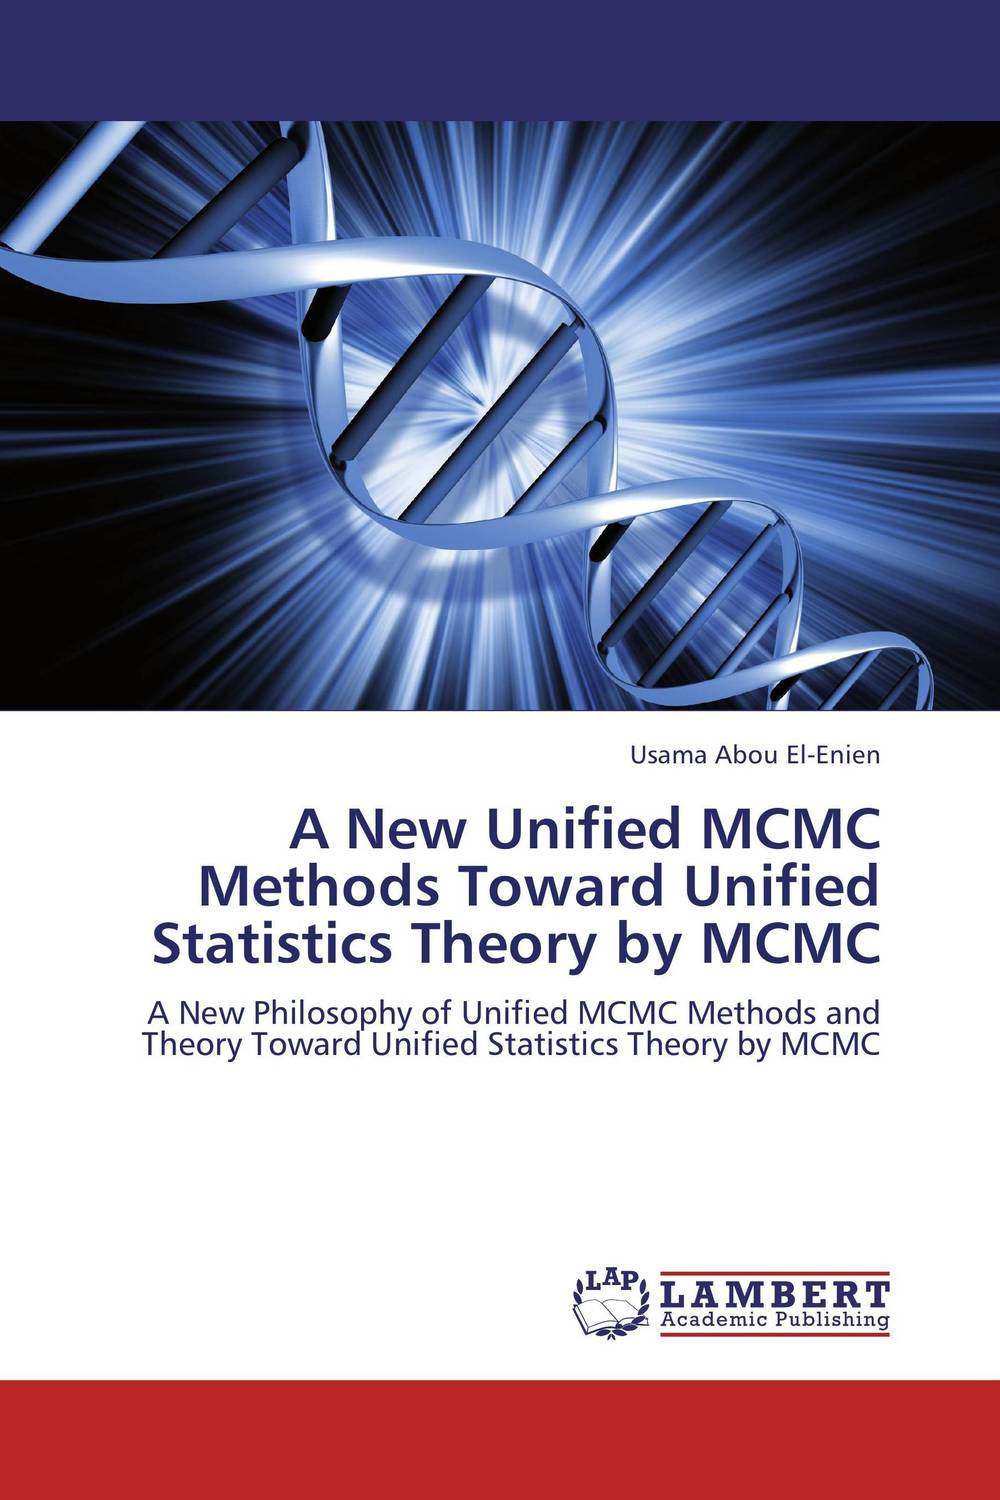 A New Unified MCMC Methods Toward Unified Statistics Theory by MCMC clustering information entities based on statistical methods